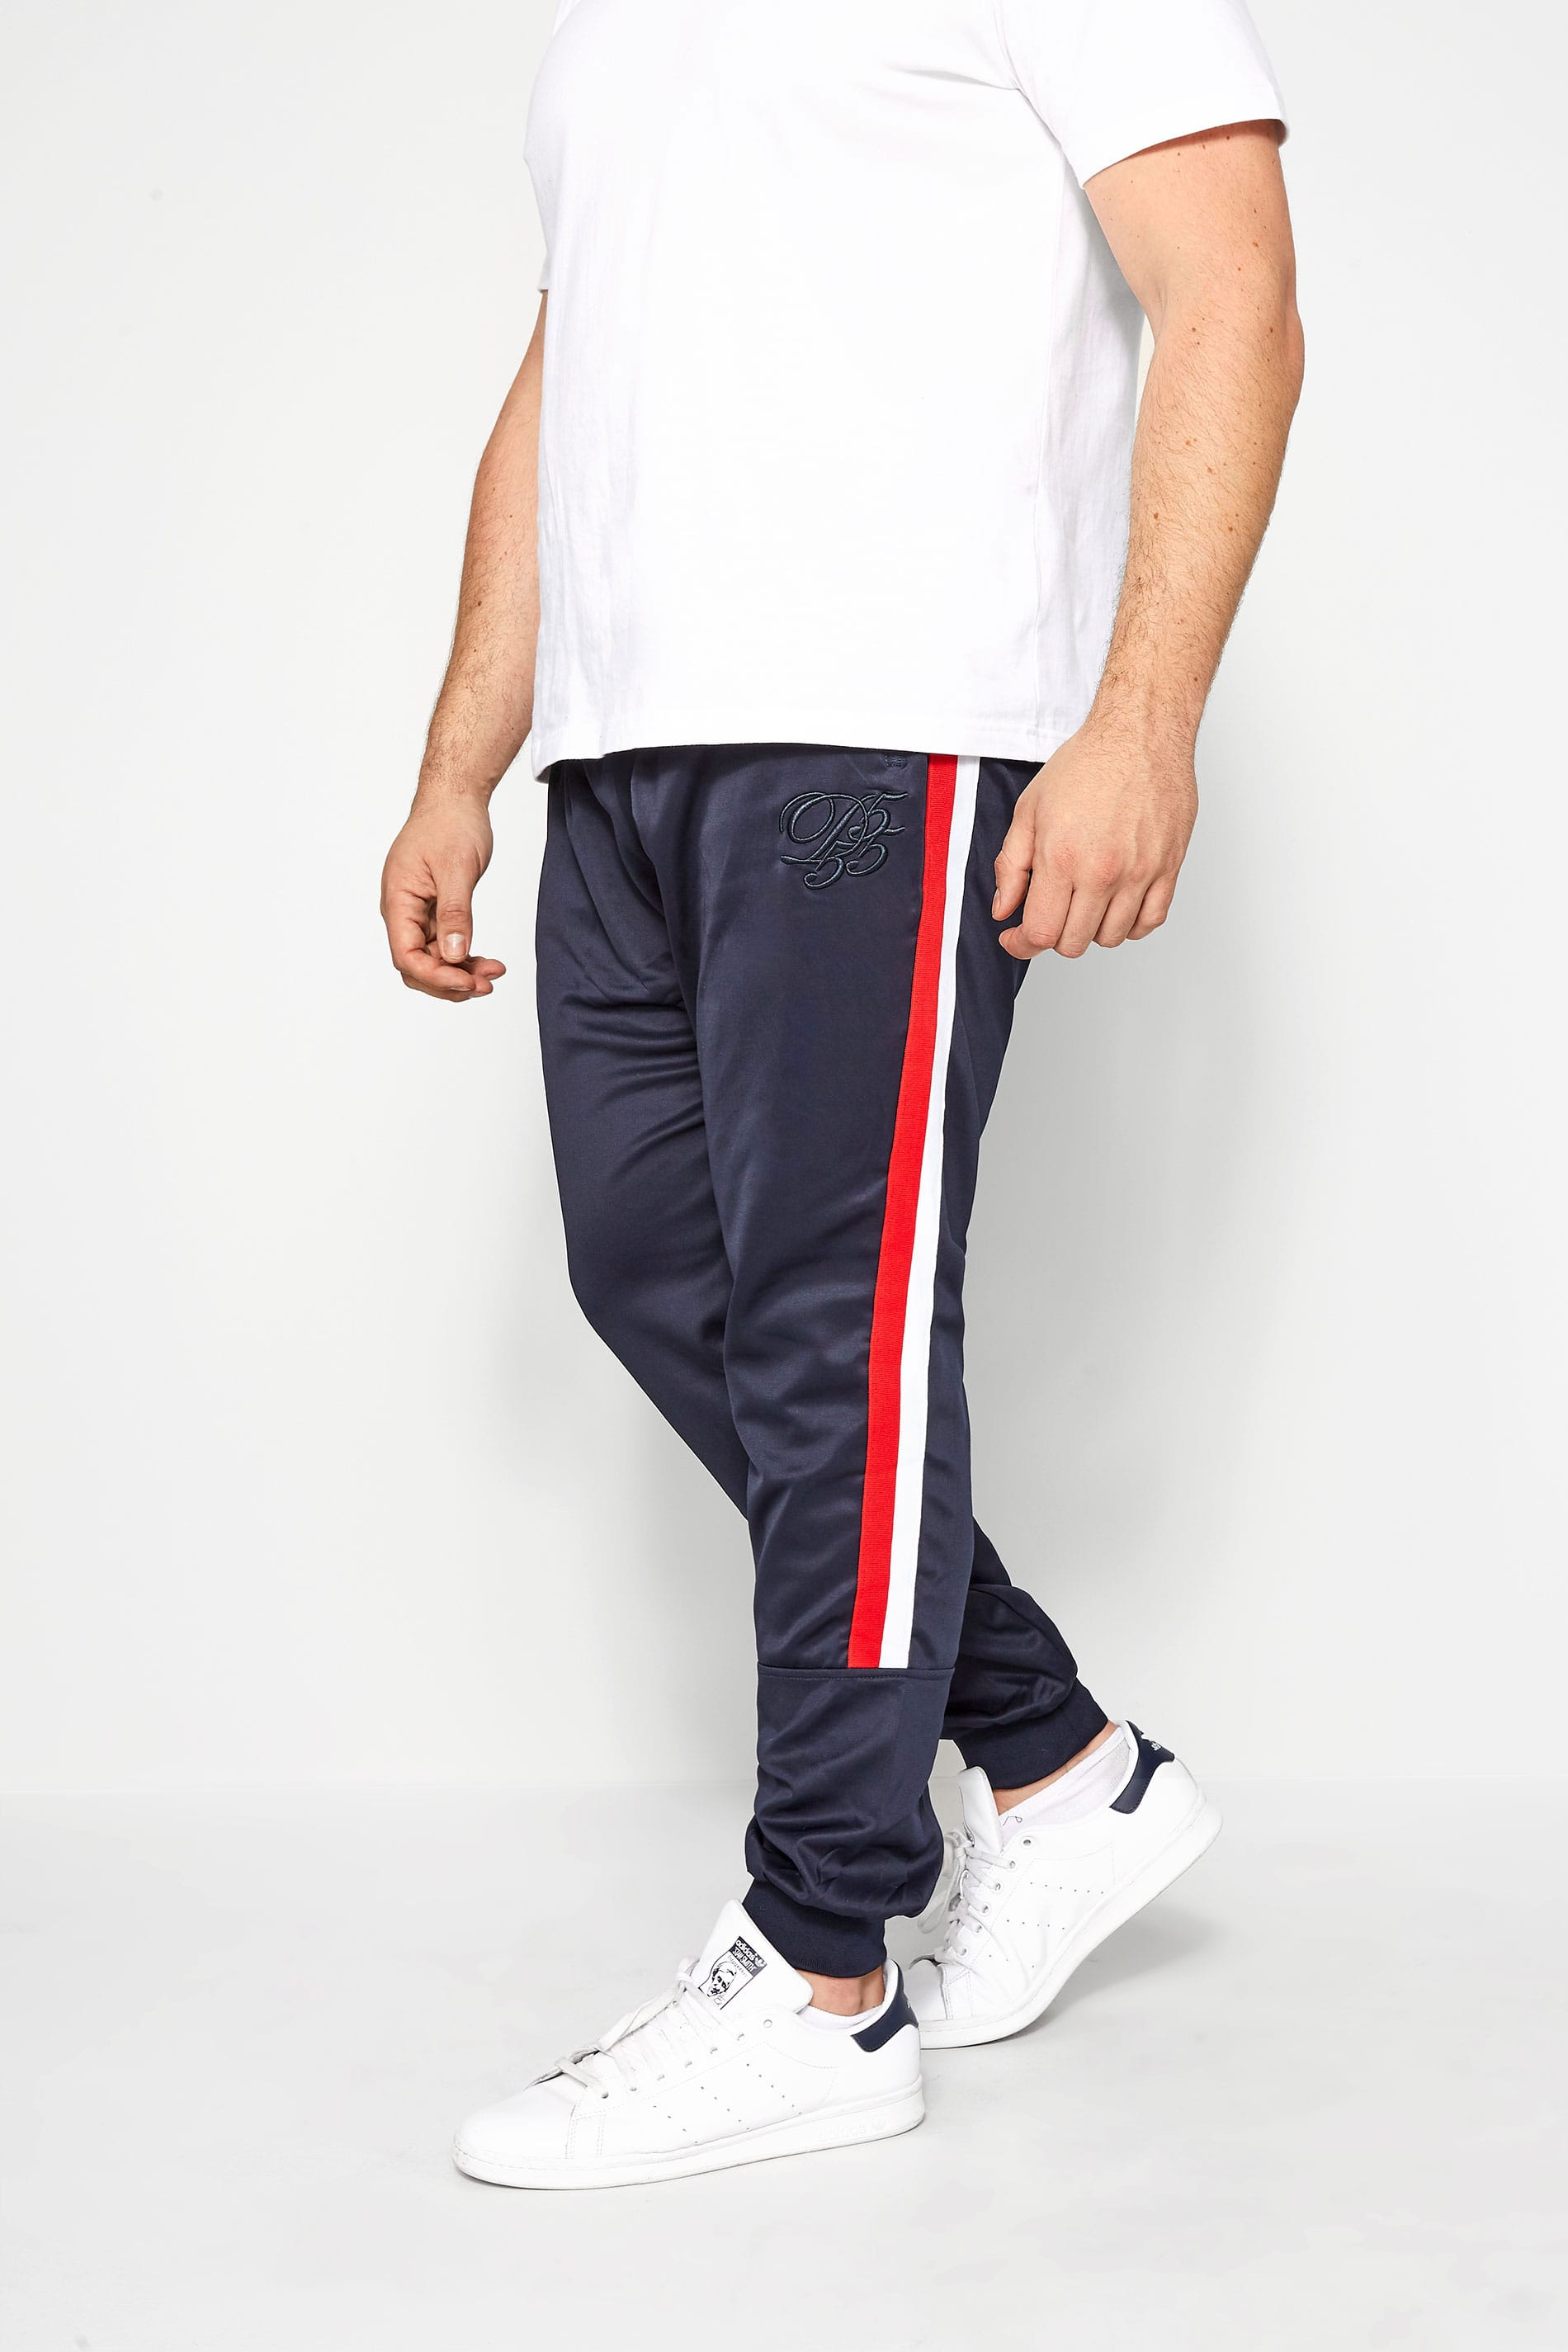 D555 COUTURE Navy Taped Joggers